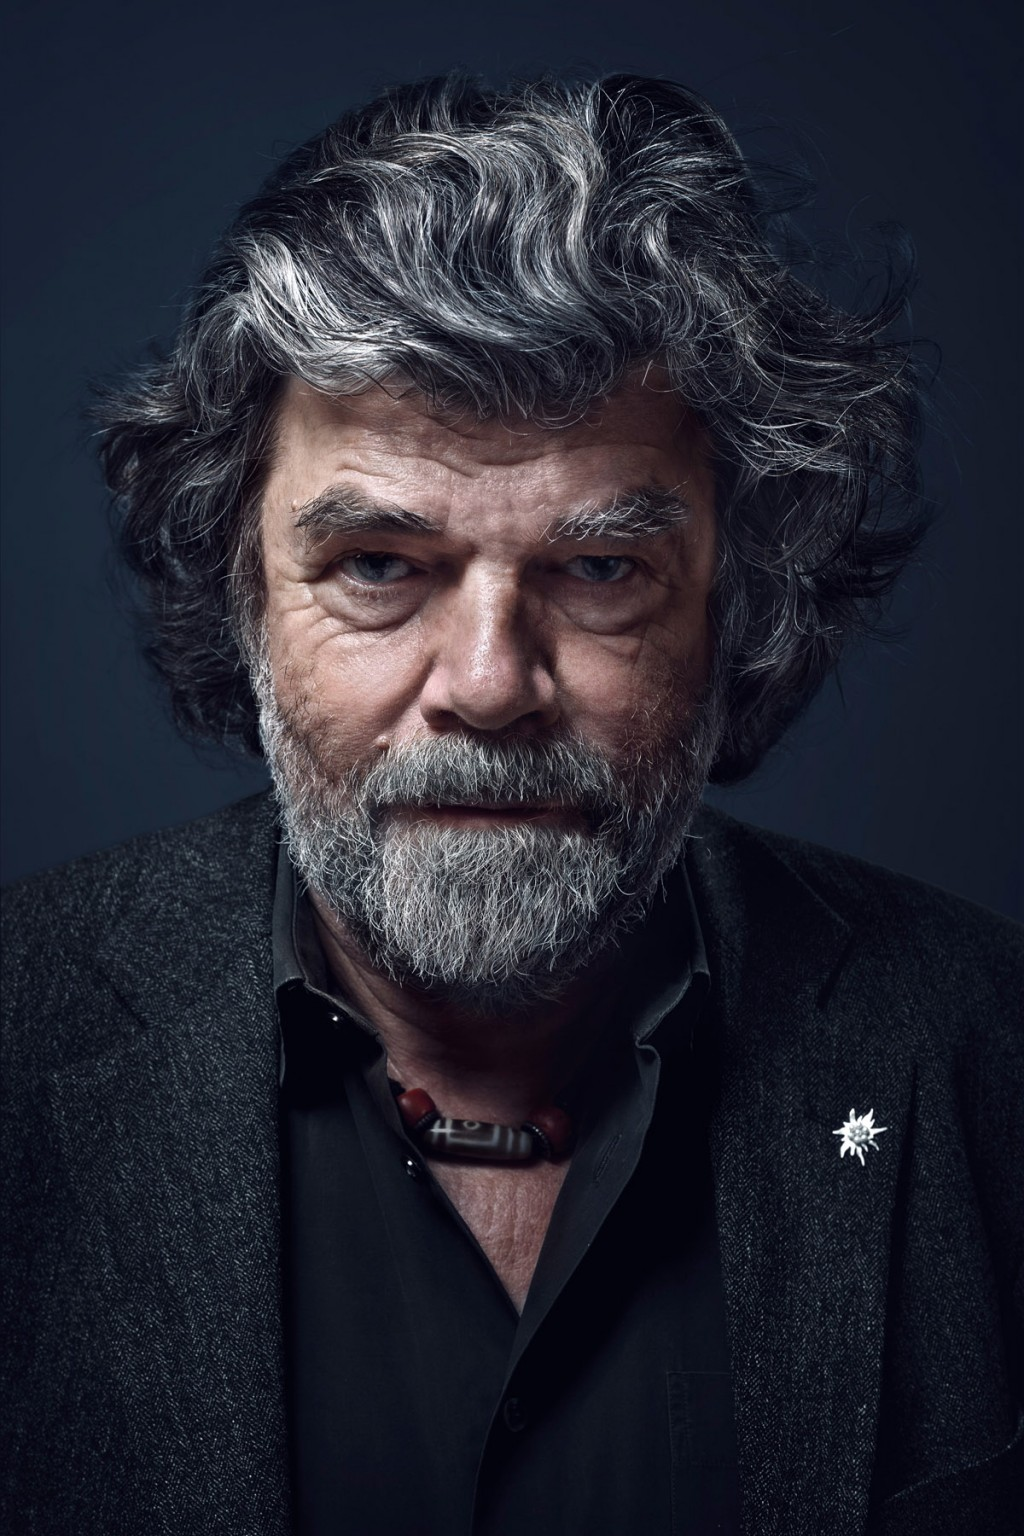 Malte Frank | Postproduction REINHOLD MESSNER